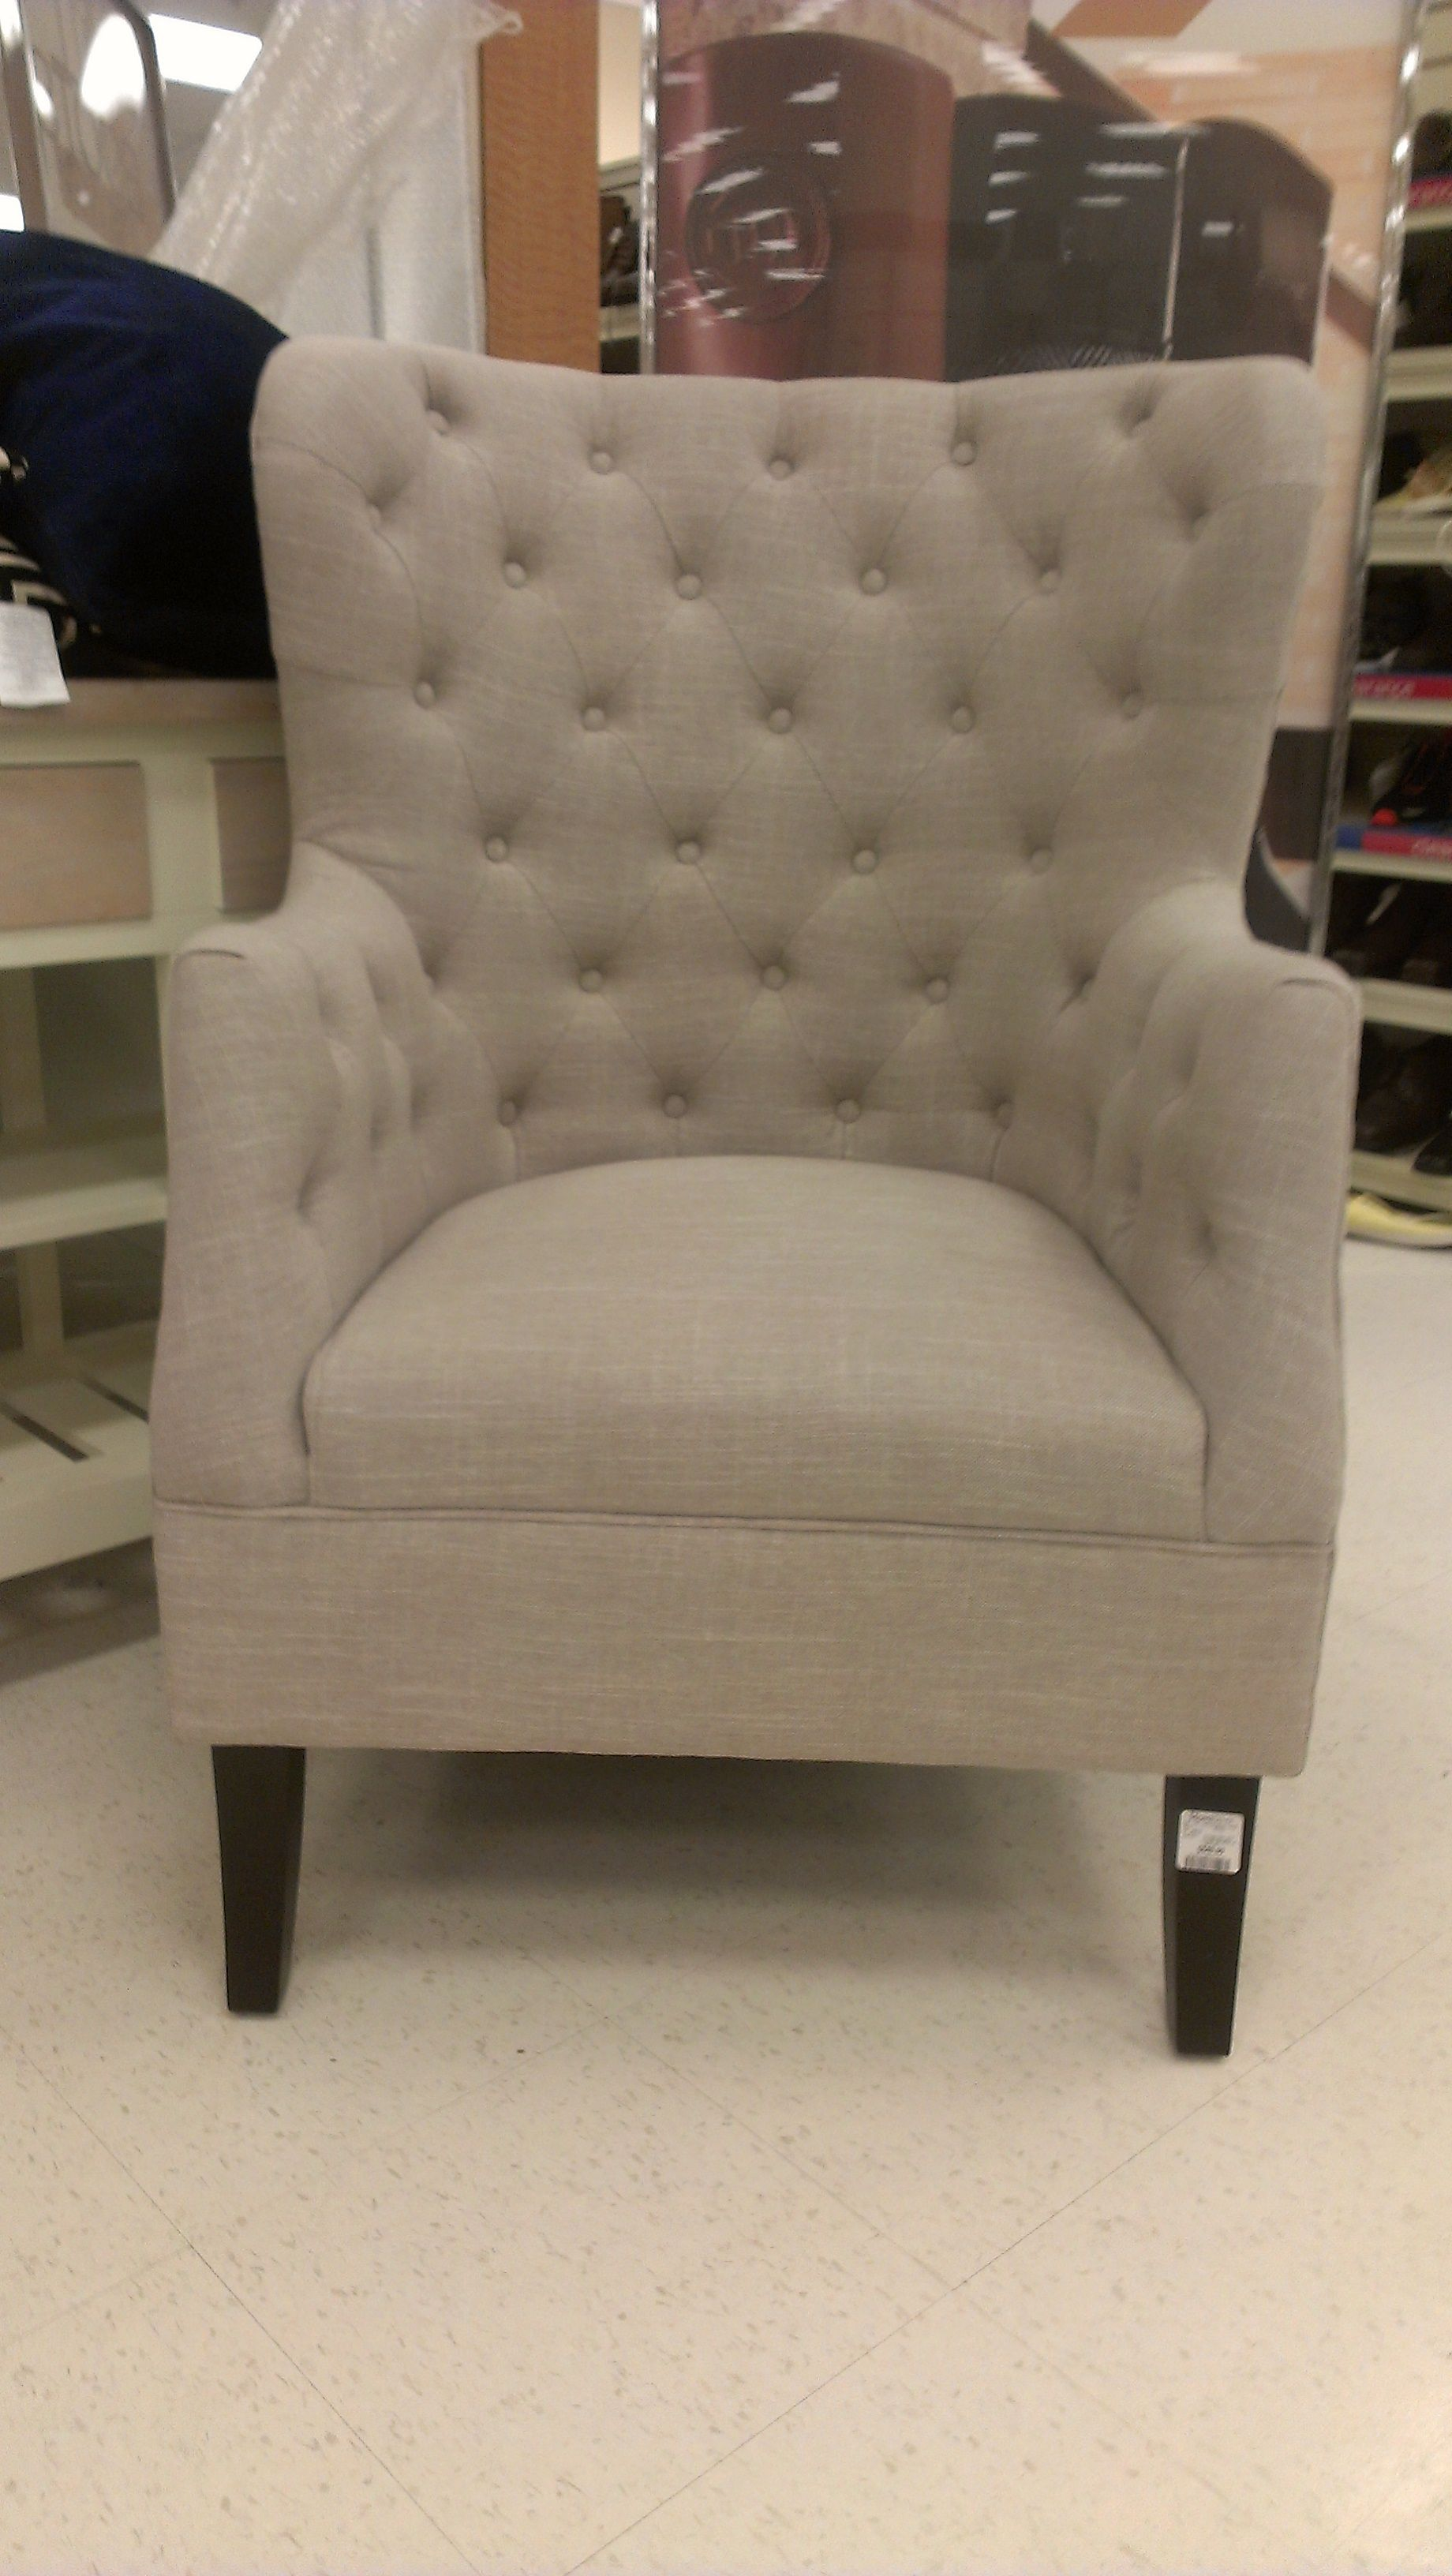 Homesense Accent Chairs Chair Homesense Homesensestyle Living Room